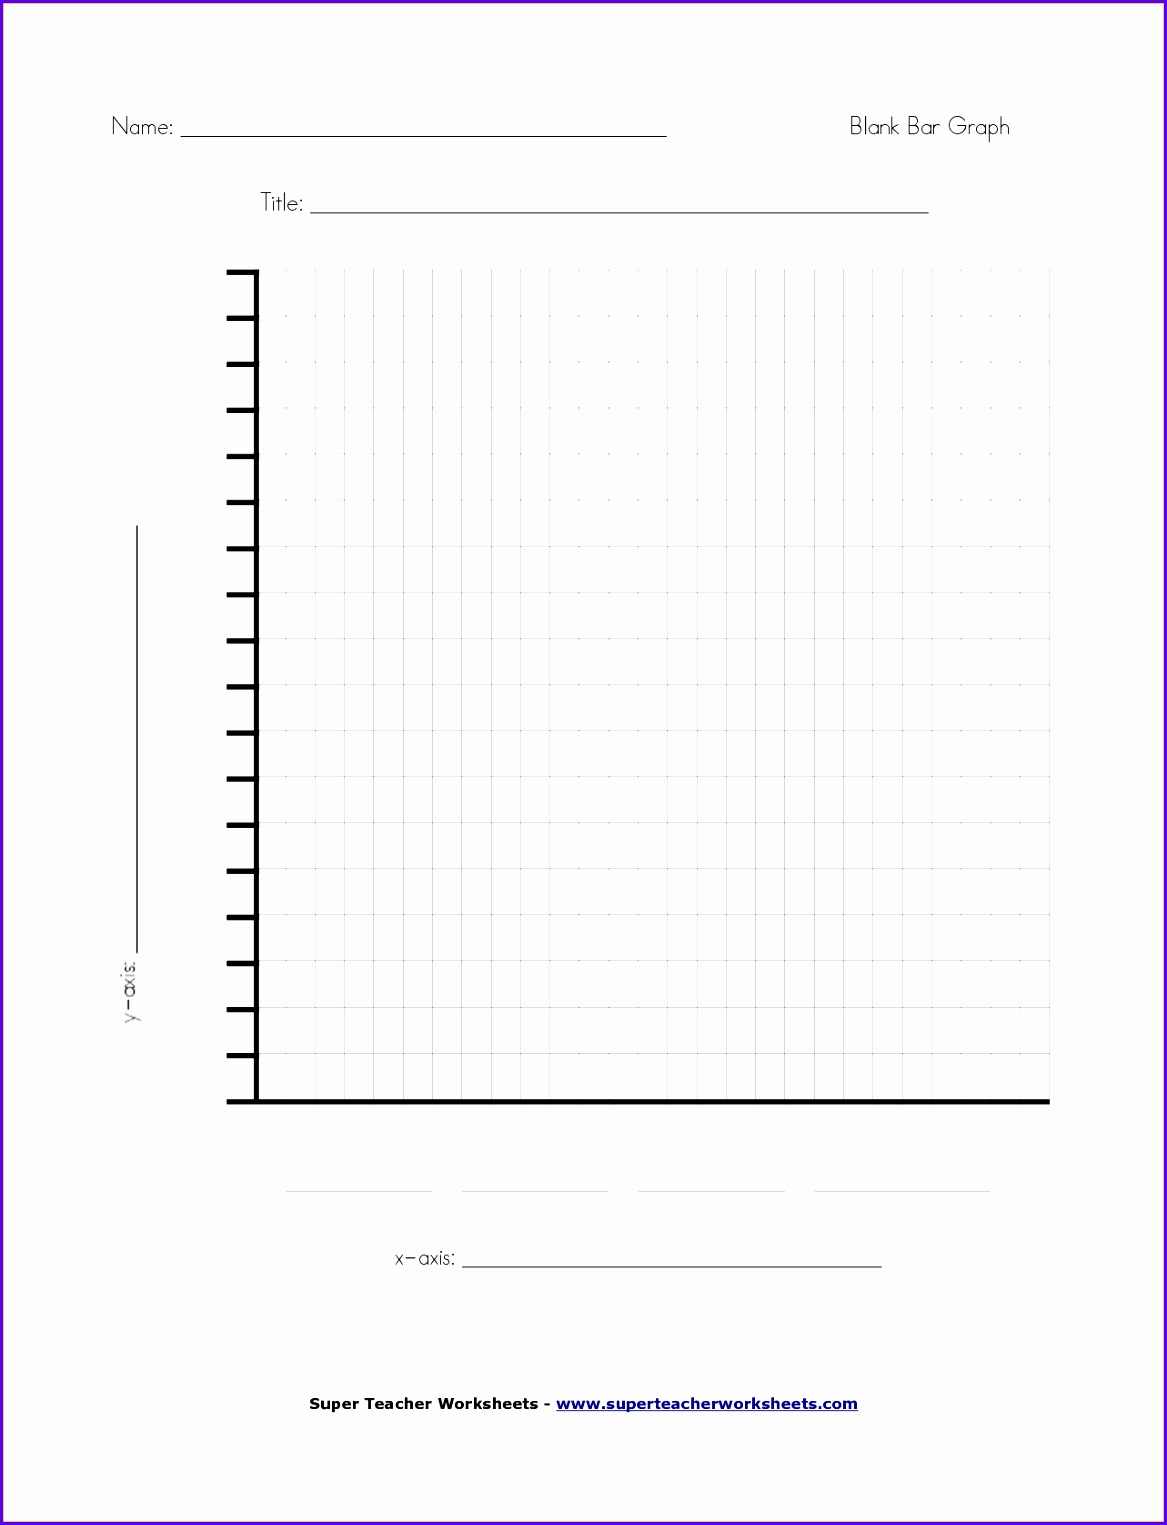 7 excel bar graph templates - excel templates